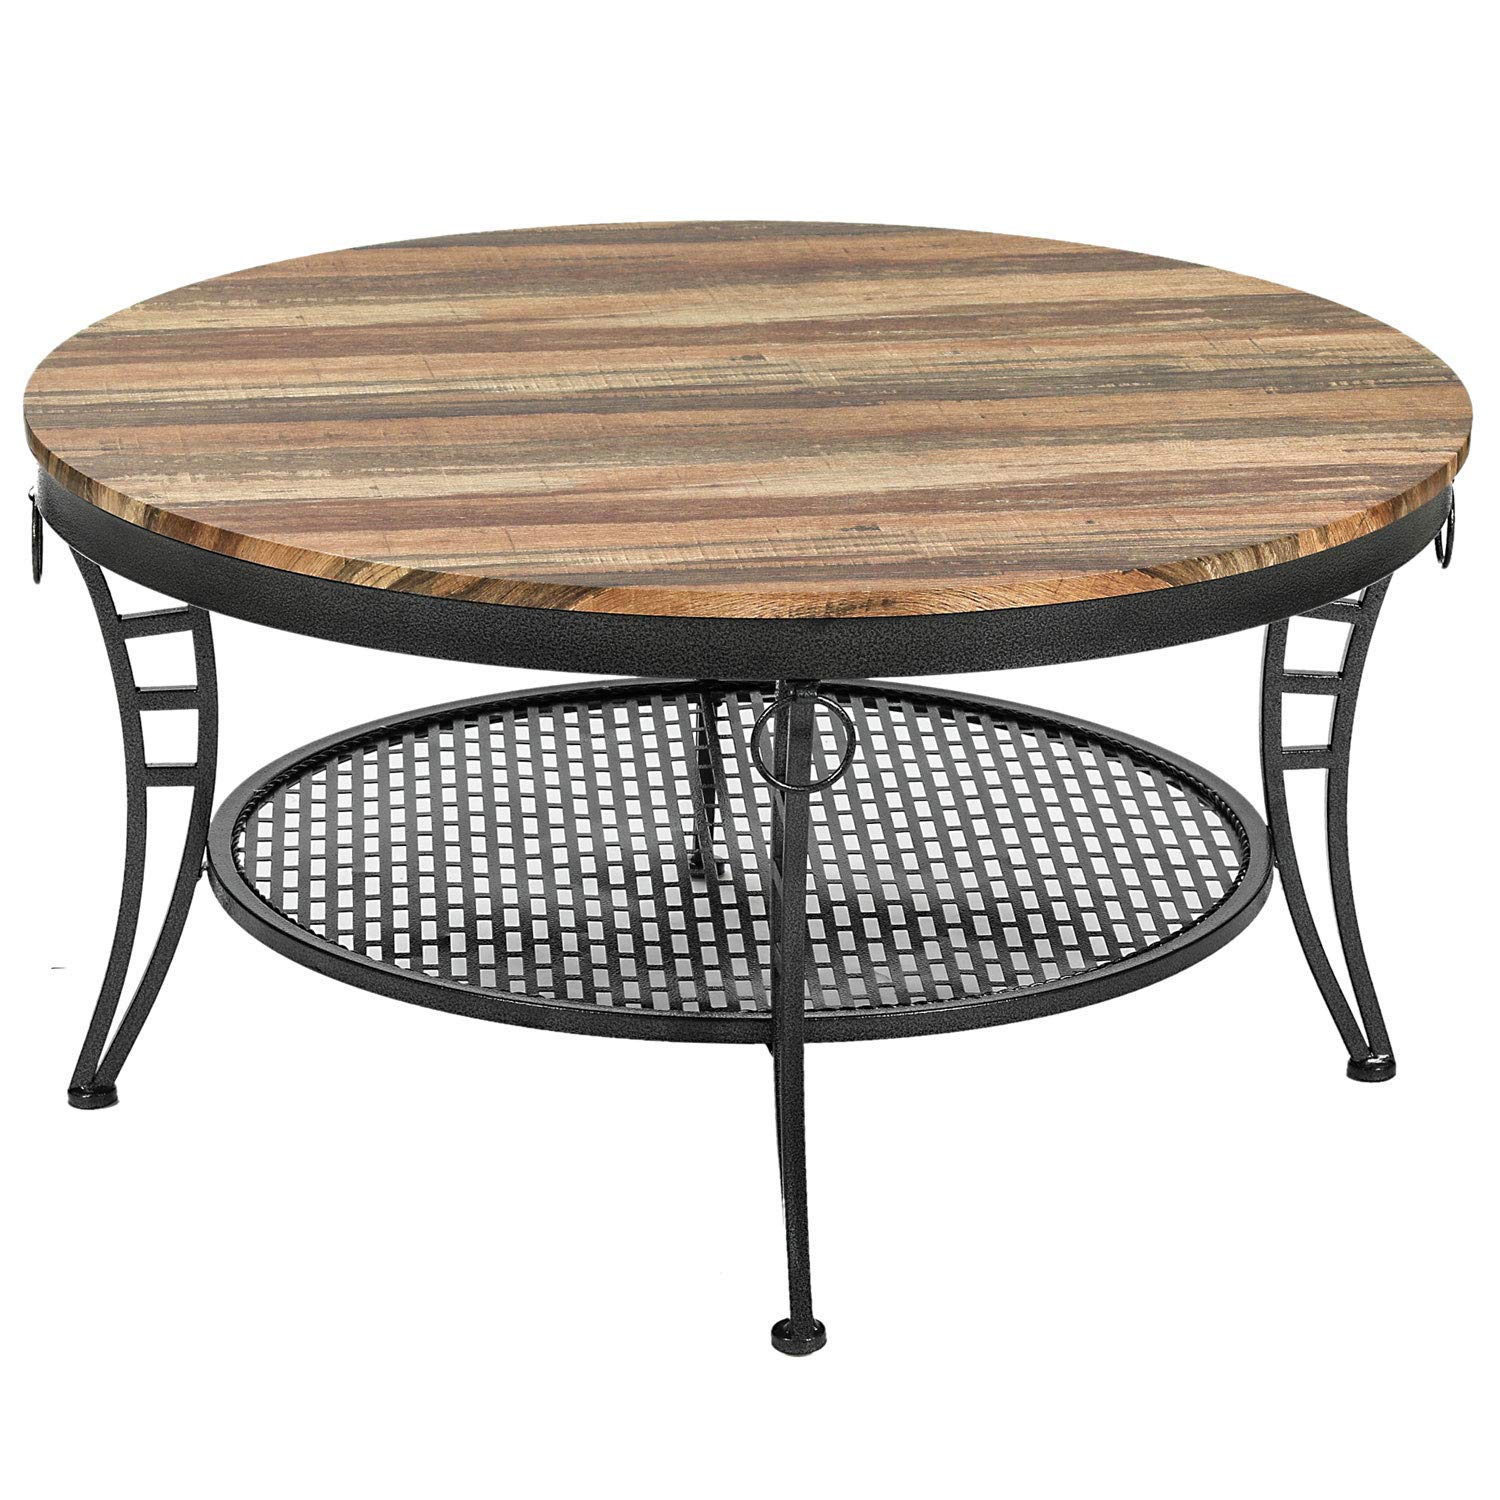 IRONCK Industrial Round Coffee Table for Living Room, Round Cocktail Table with Storage, Sturdy Curved Legs, Eco-Friendly MDF Board, Vintage Brown by IRONCK